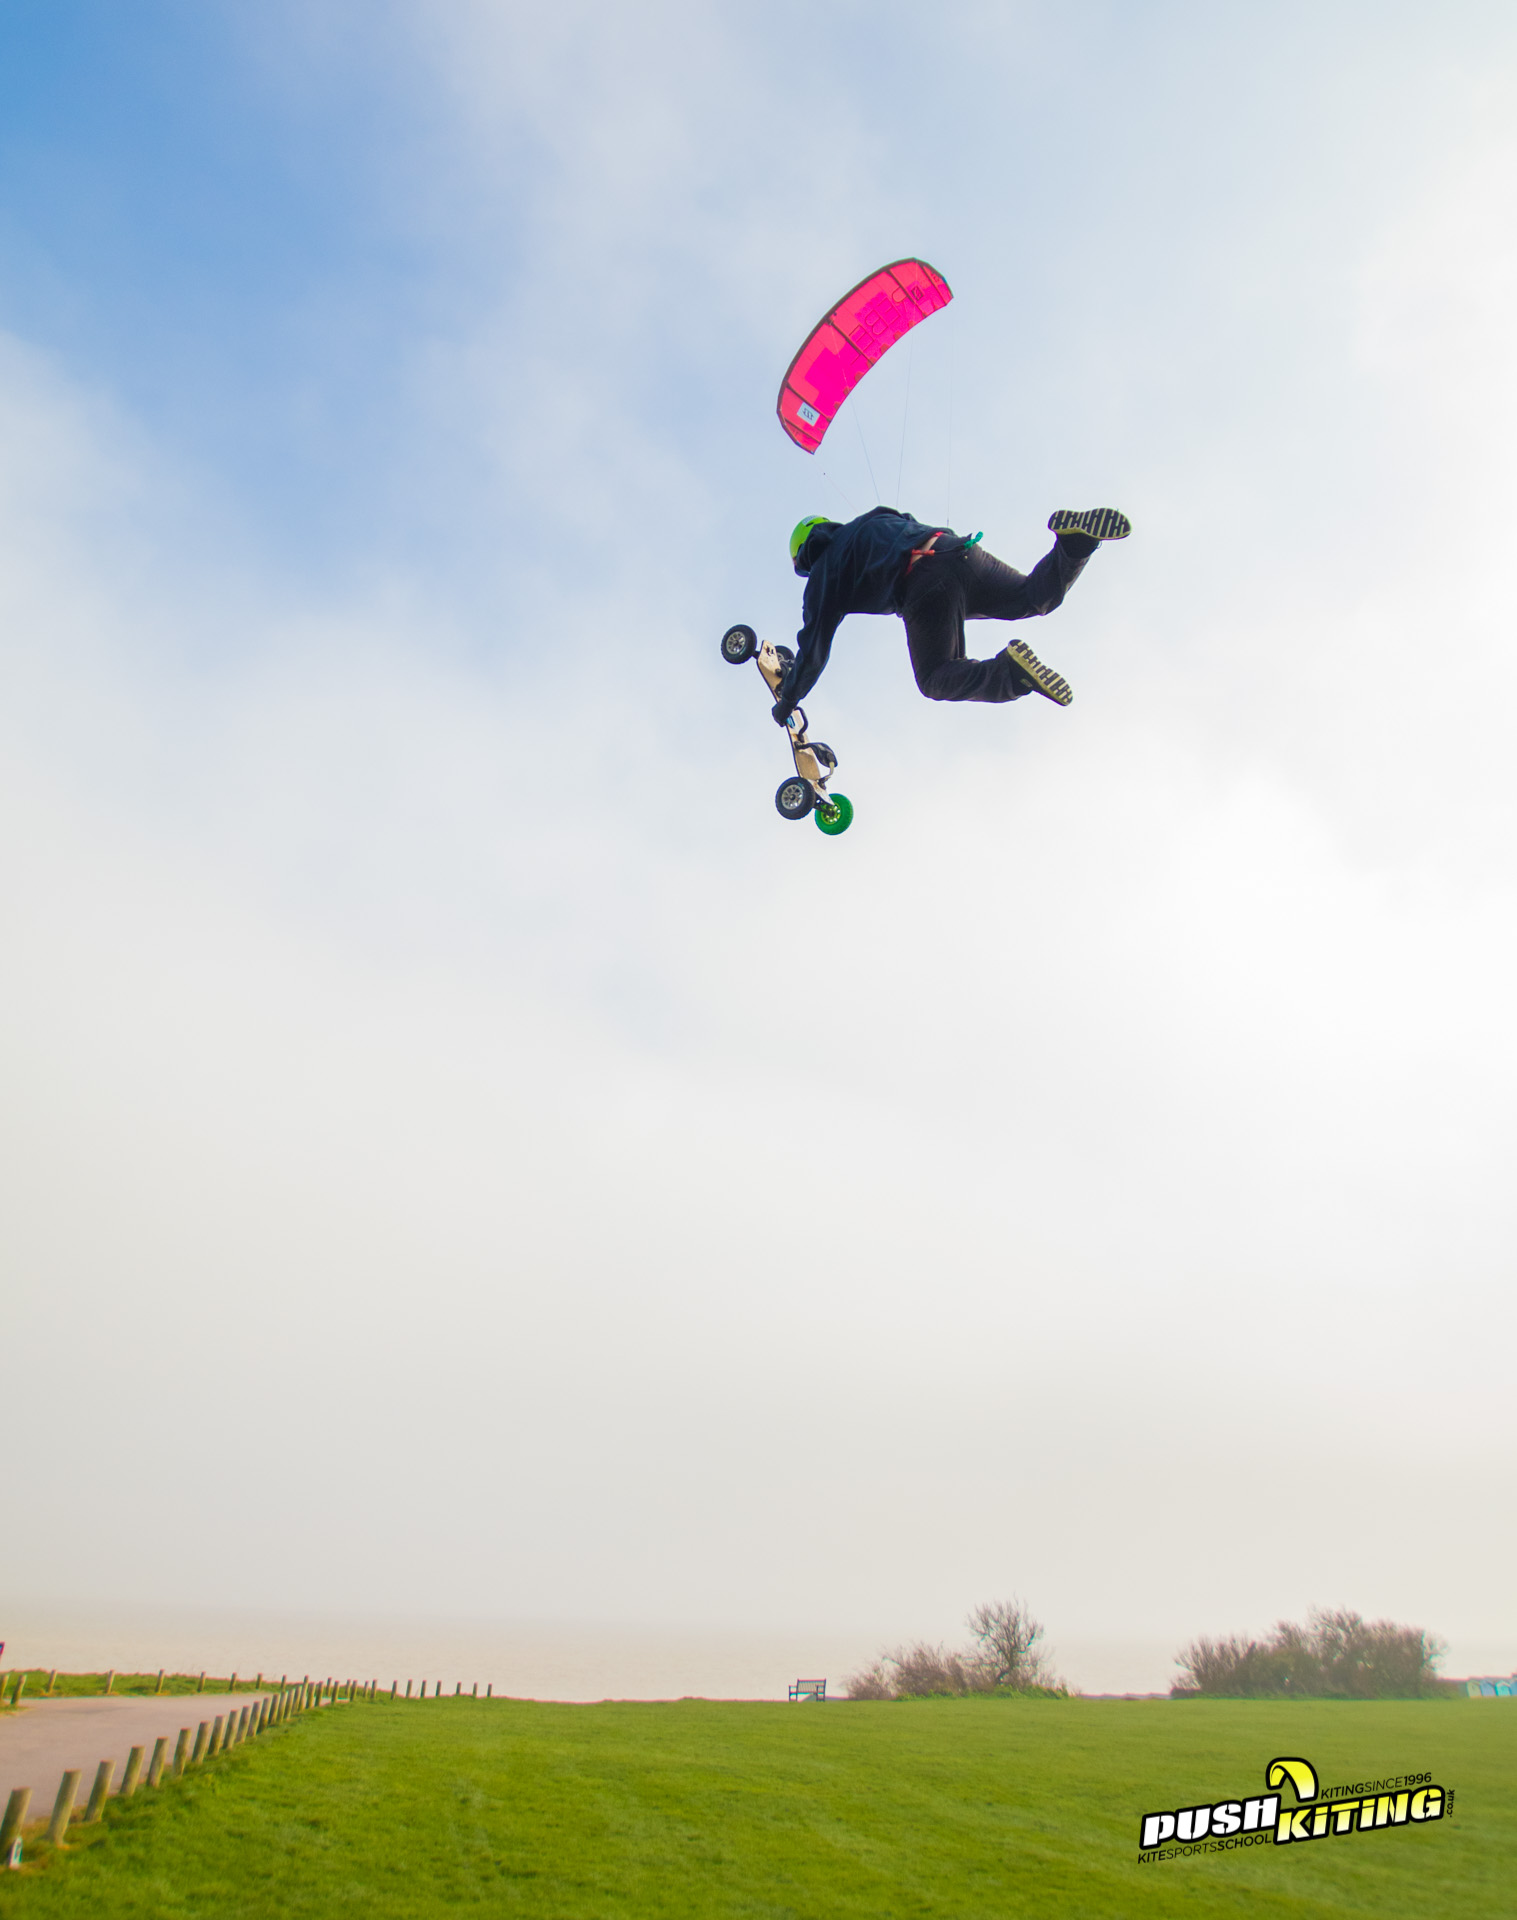 2017 Kite land boarding photo